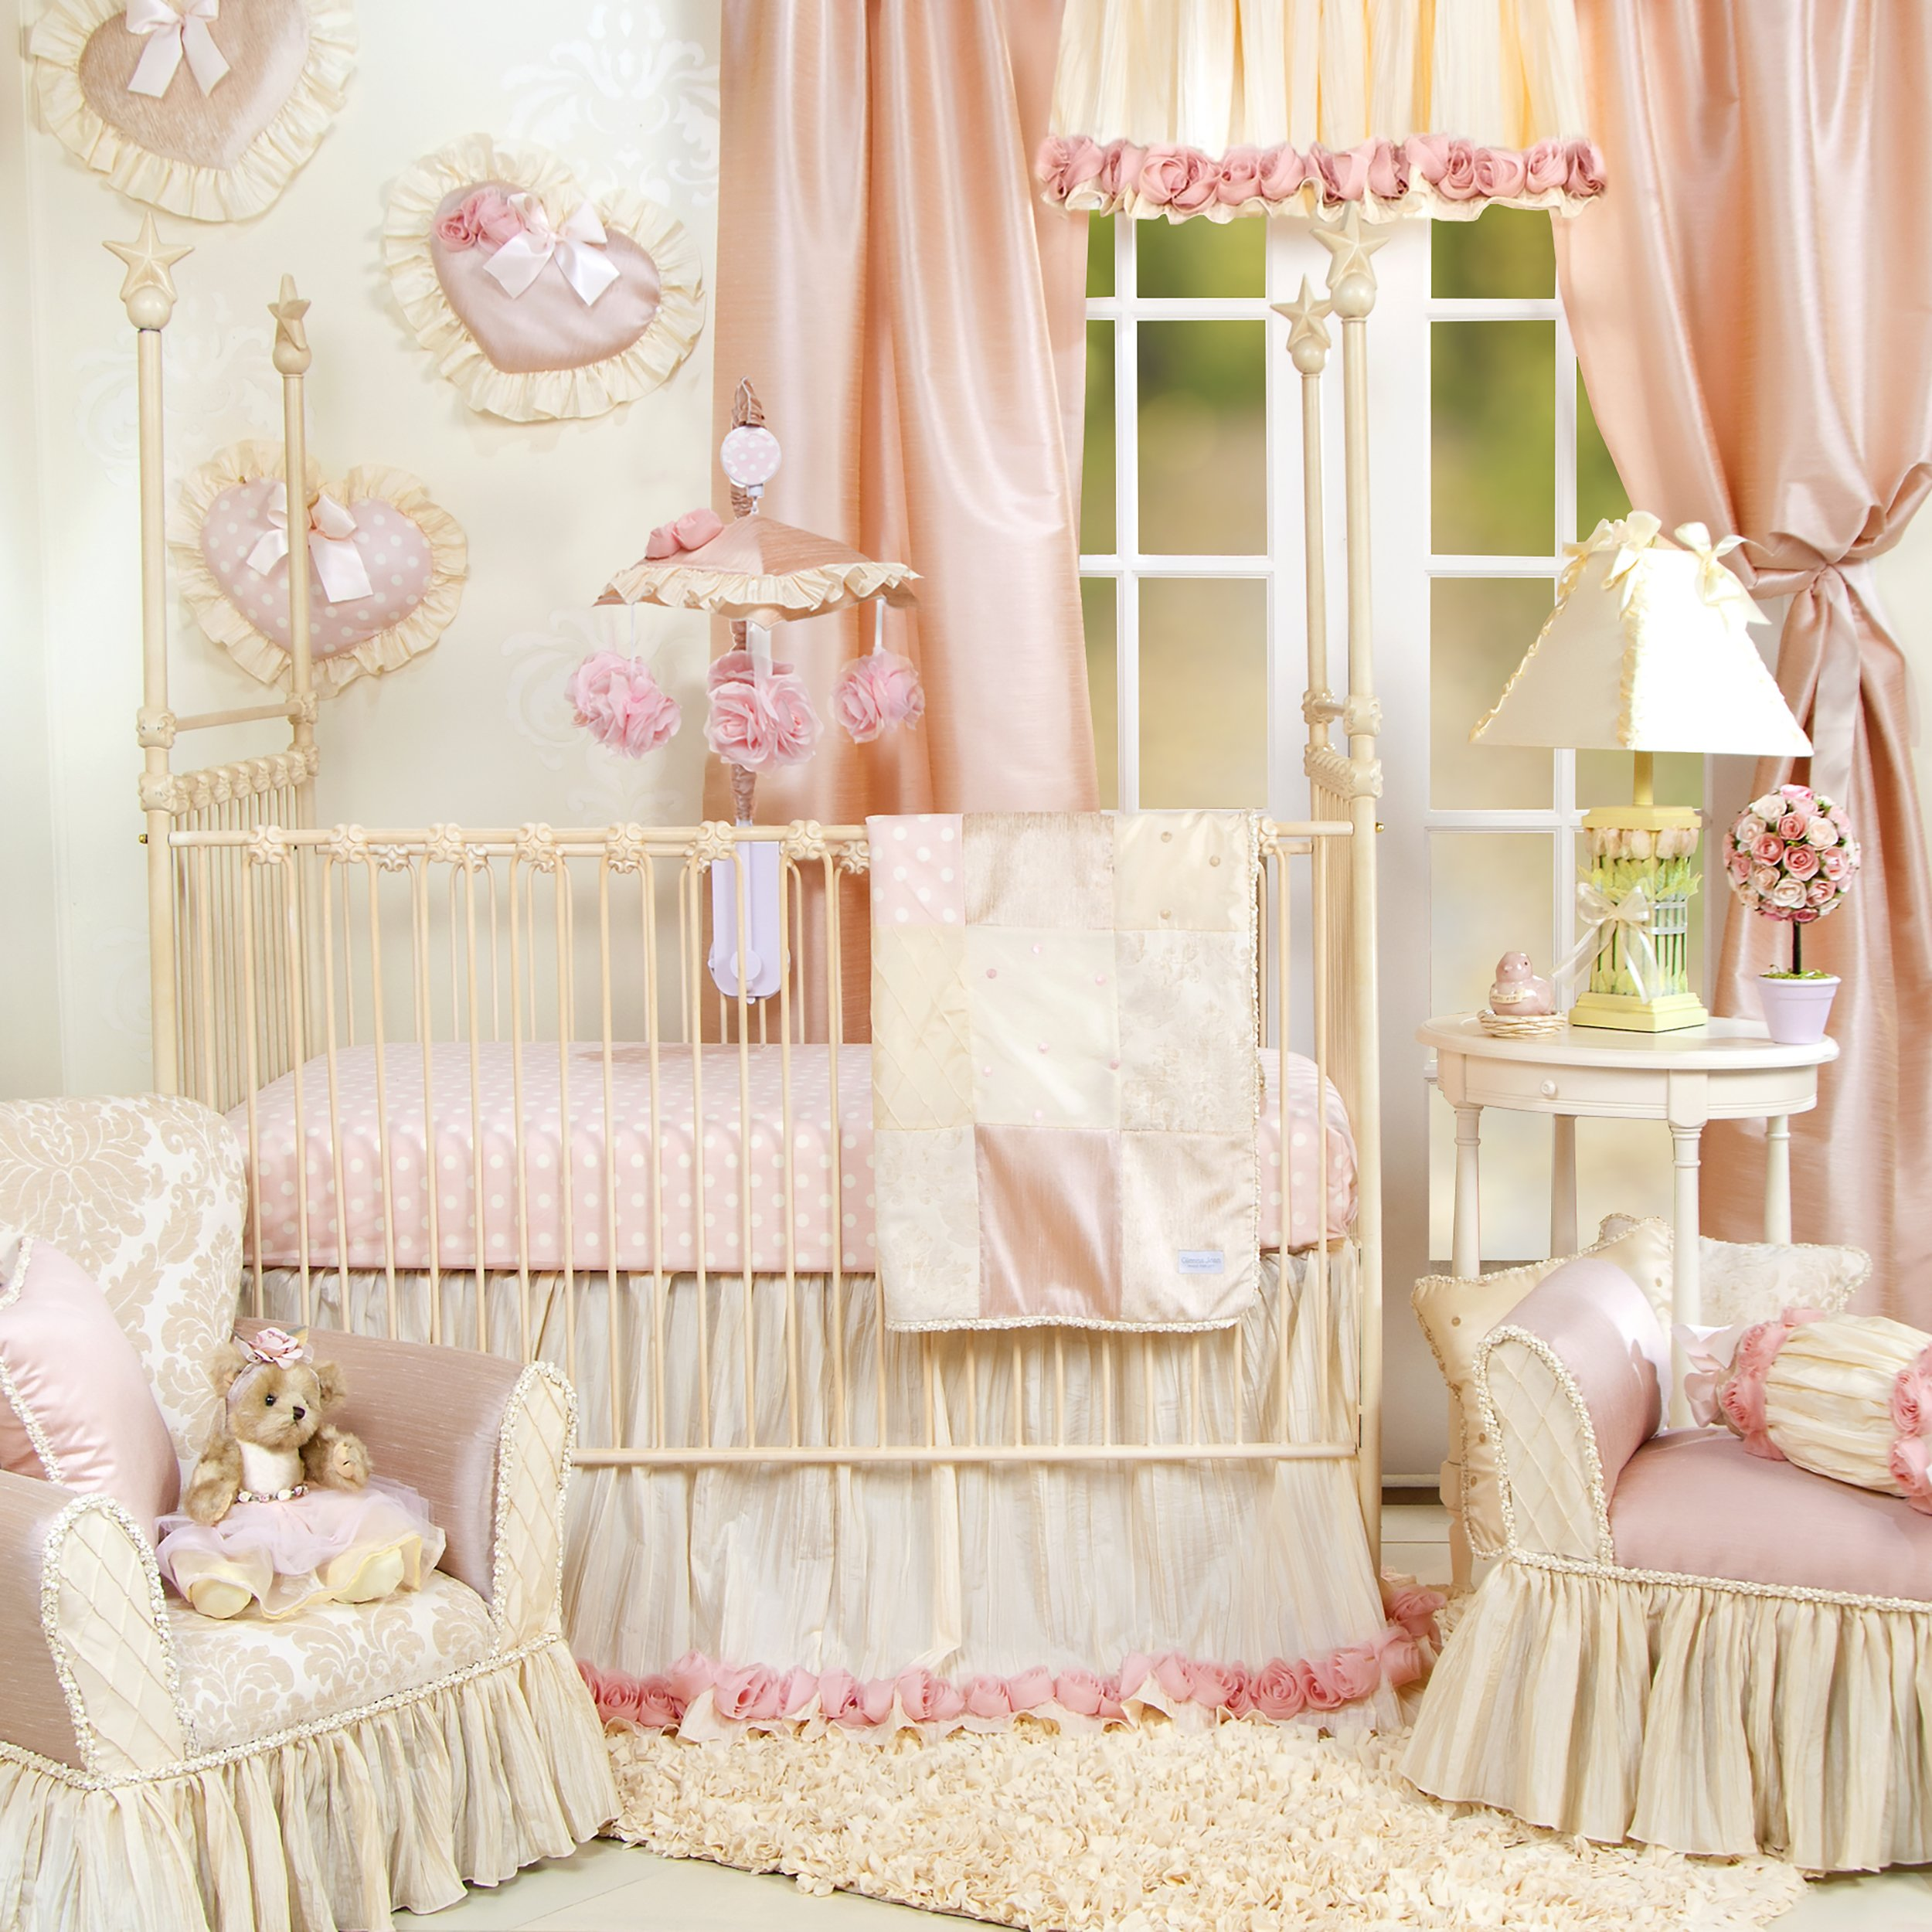 Crib Bedding Set by Glenna Jean | Baby Girl Nursery + Hand Crafted with Premium Quality Fabrics | Includes Quilt, Sheet and Bed Skirt with Pink and Ivory Accents by Glenna Jean